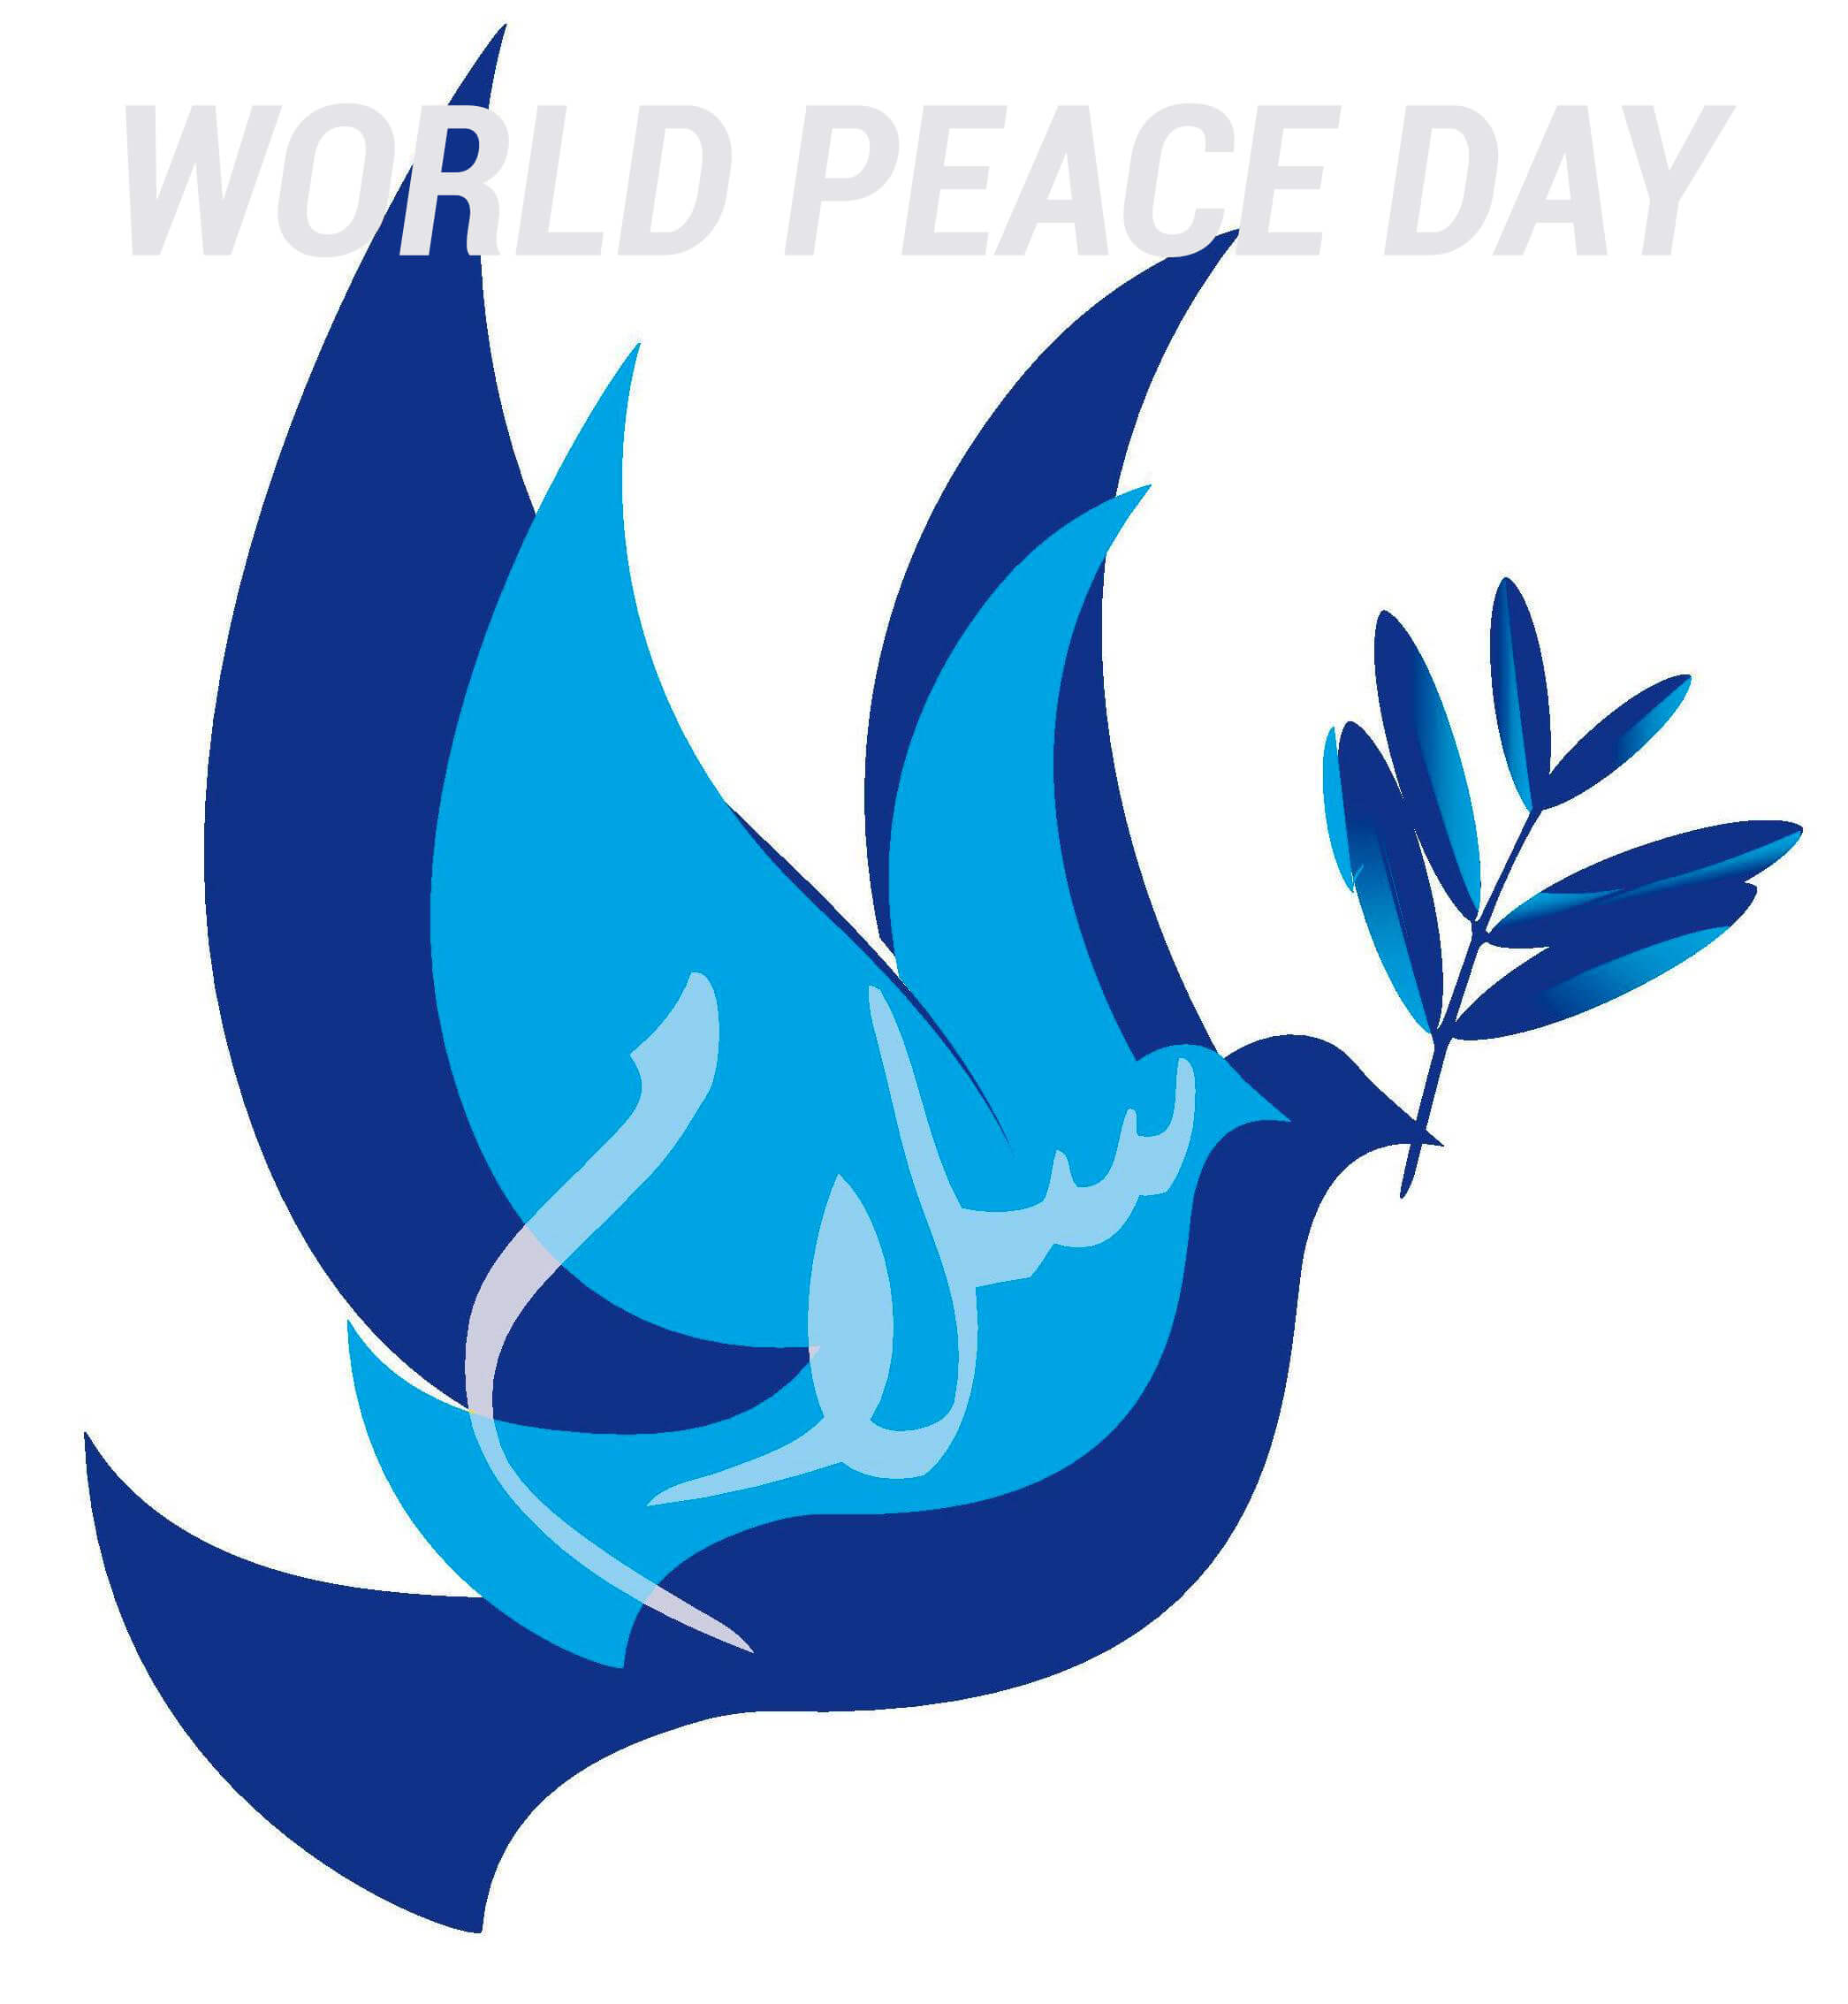 international world peace day